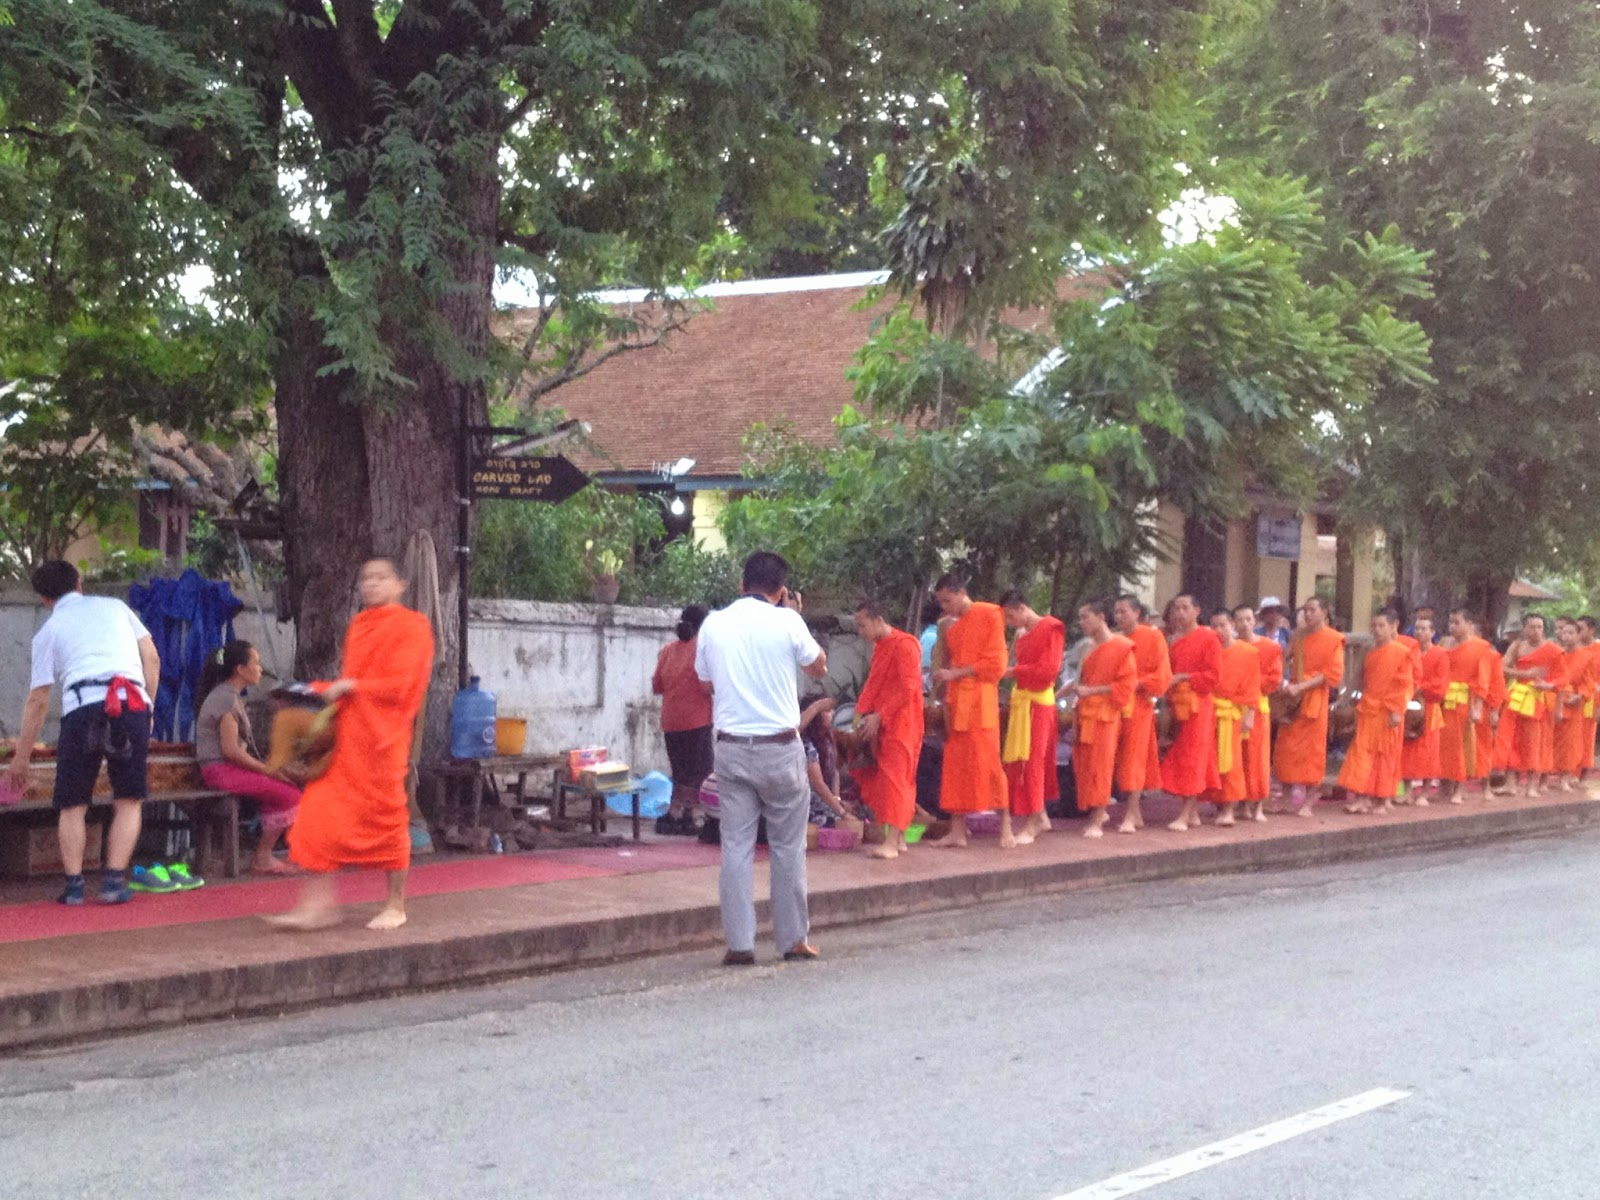 Luang Prabang - Some tourists got really close to the monks to snap photos